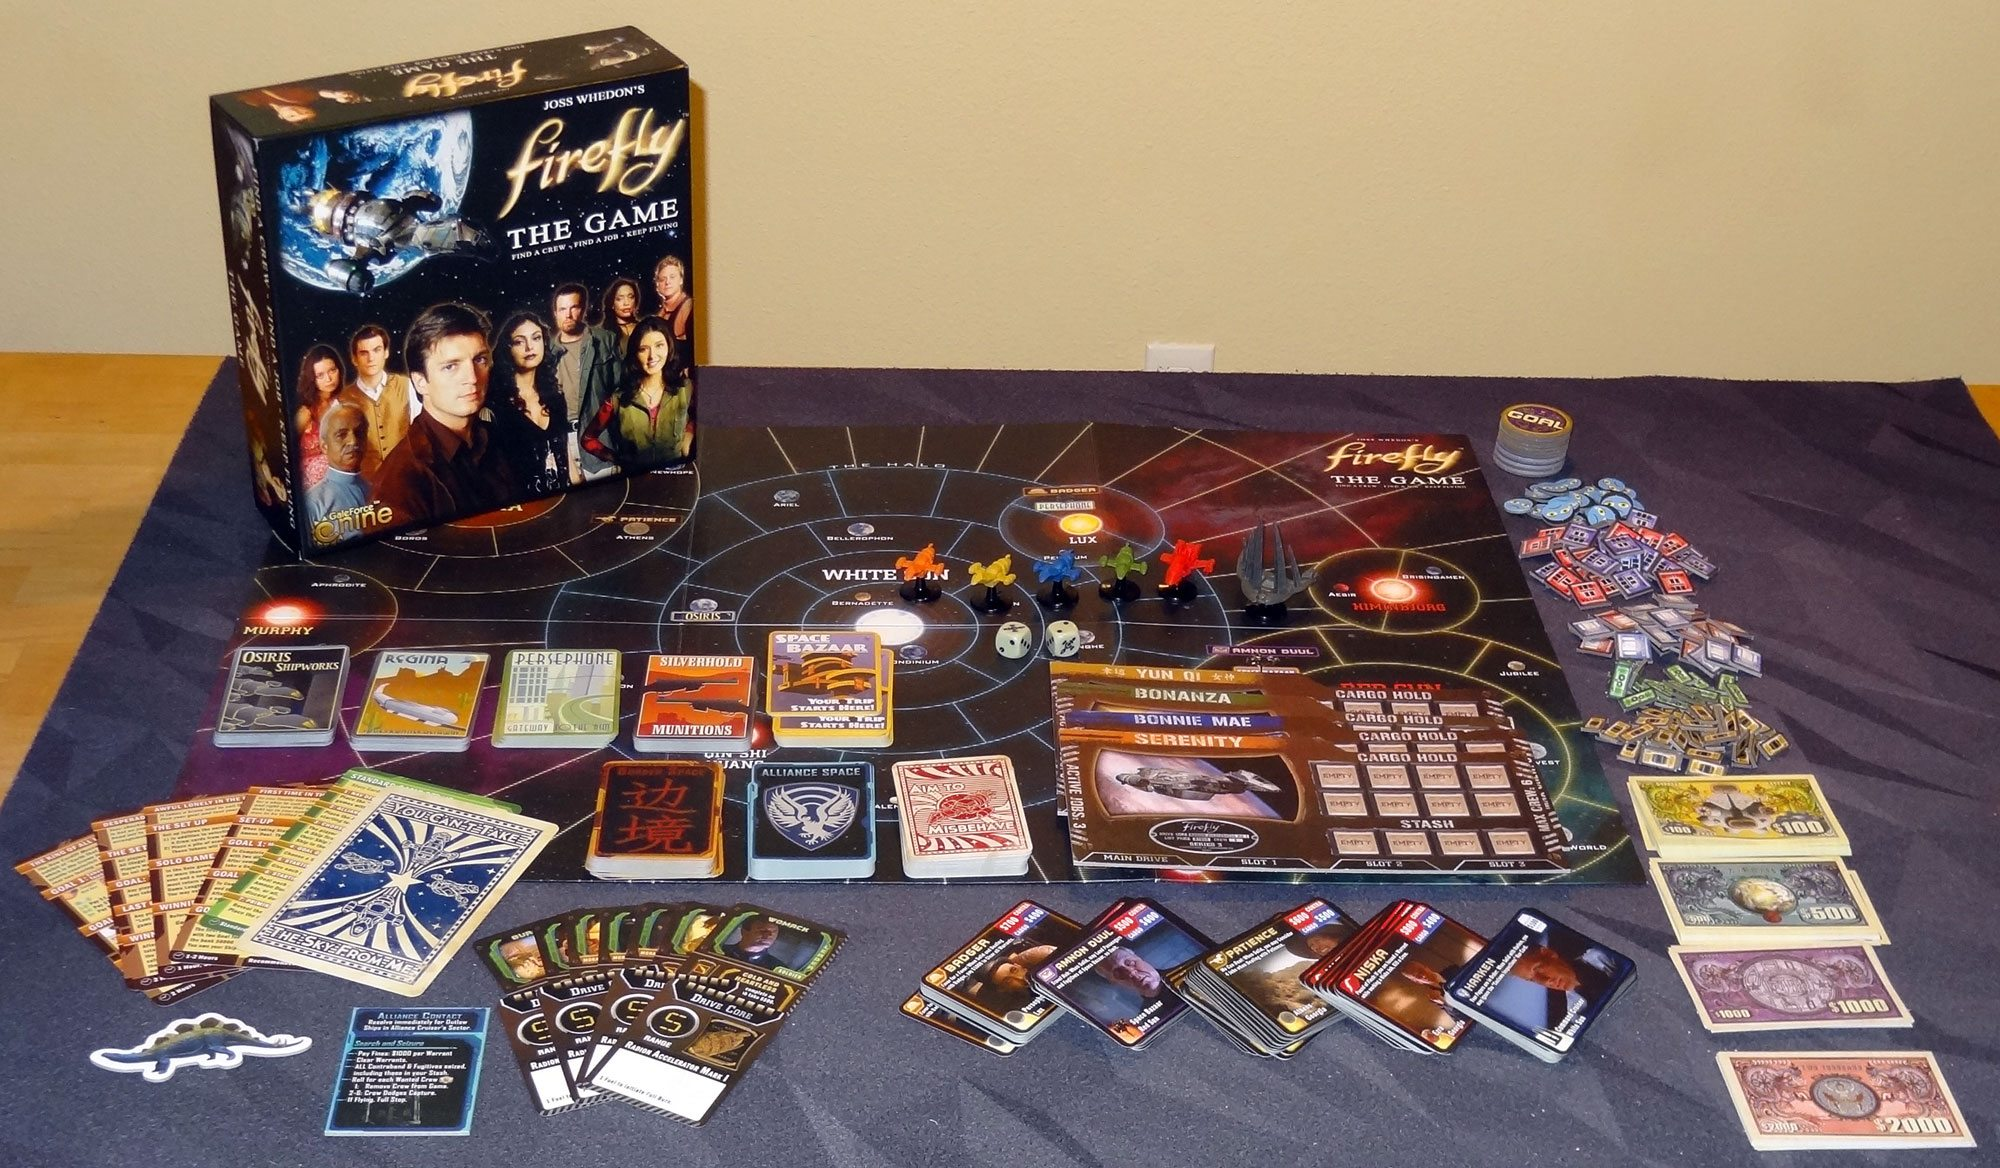 Firefly: The Board Game e seus componentes